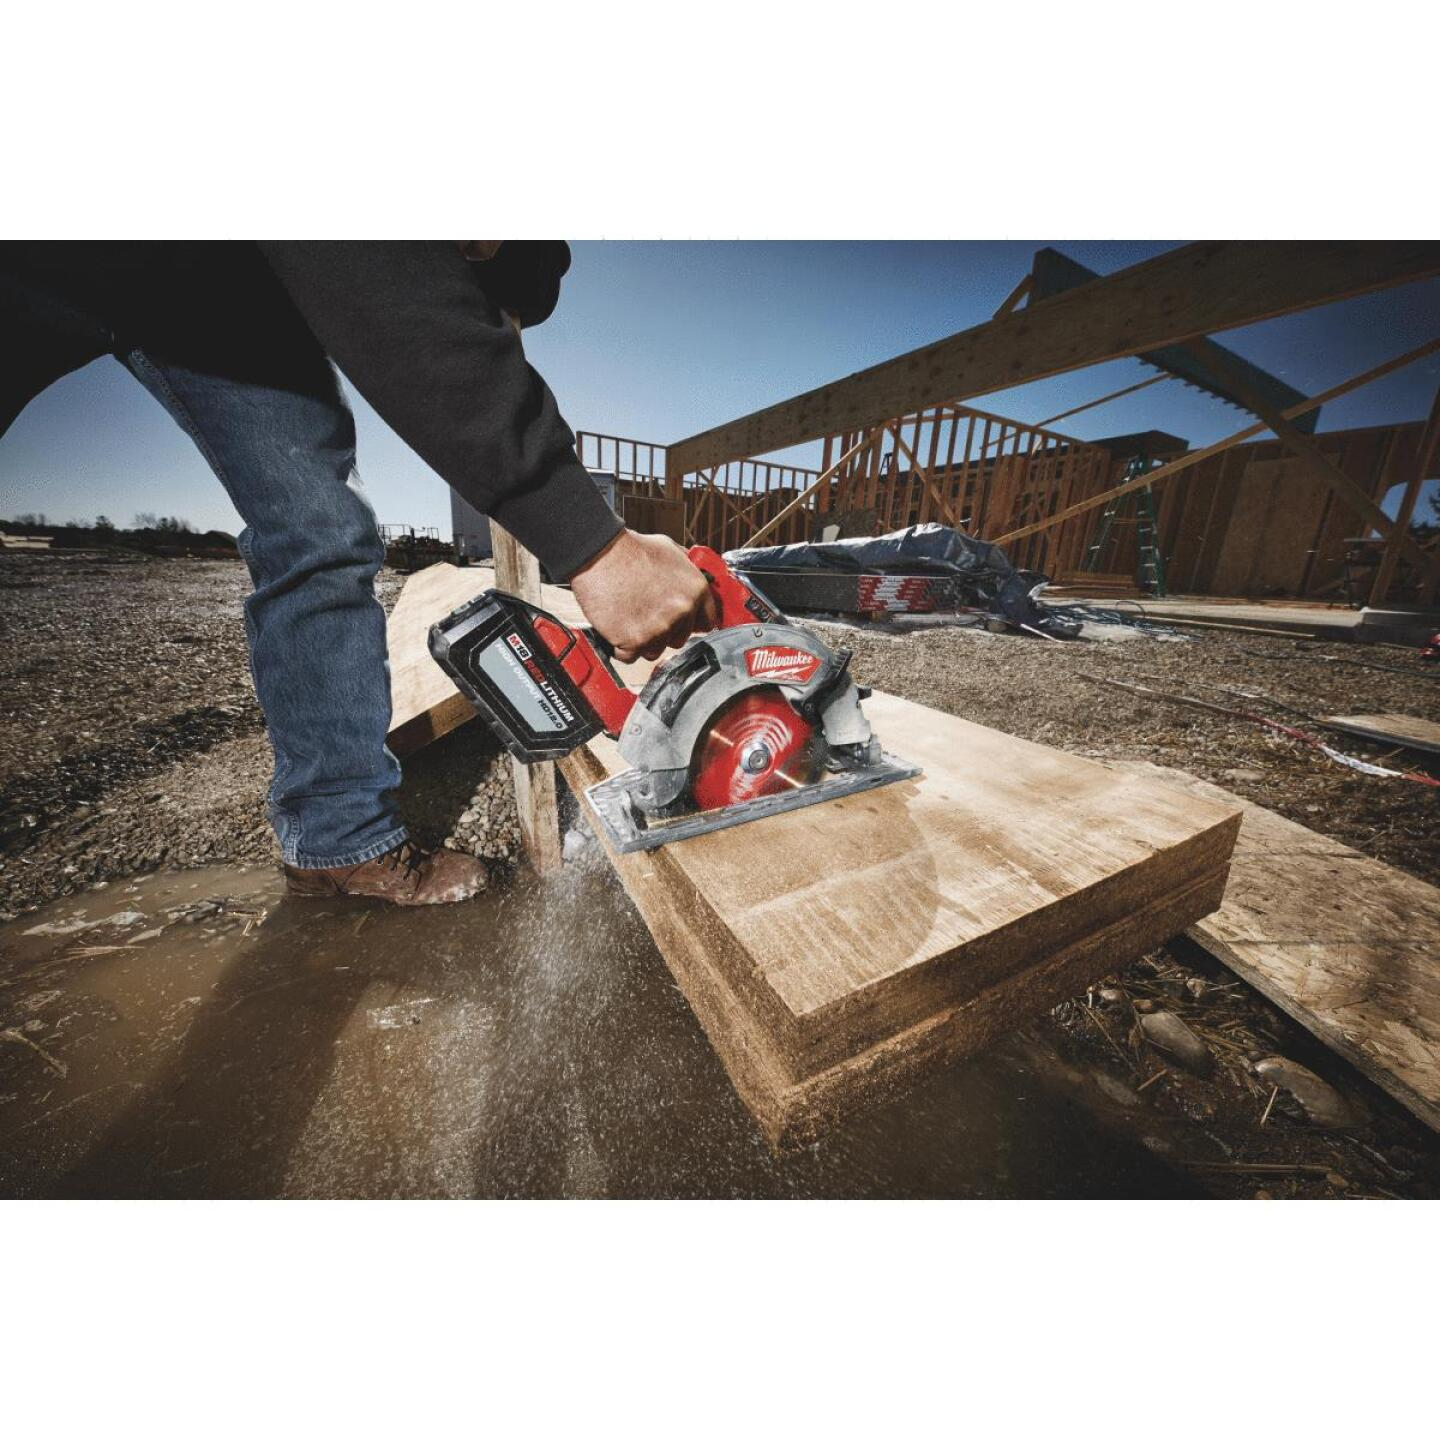 Milwaukee M18 FUEL 18 Volt Lithium-Ion Brushless 7-1/4 In. Cordless Circular Saw Kit Image 5